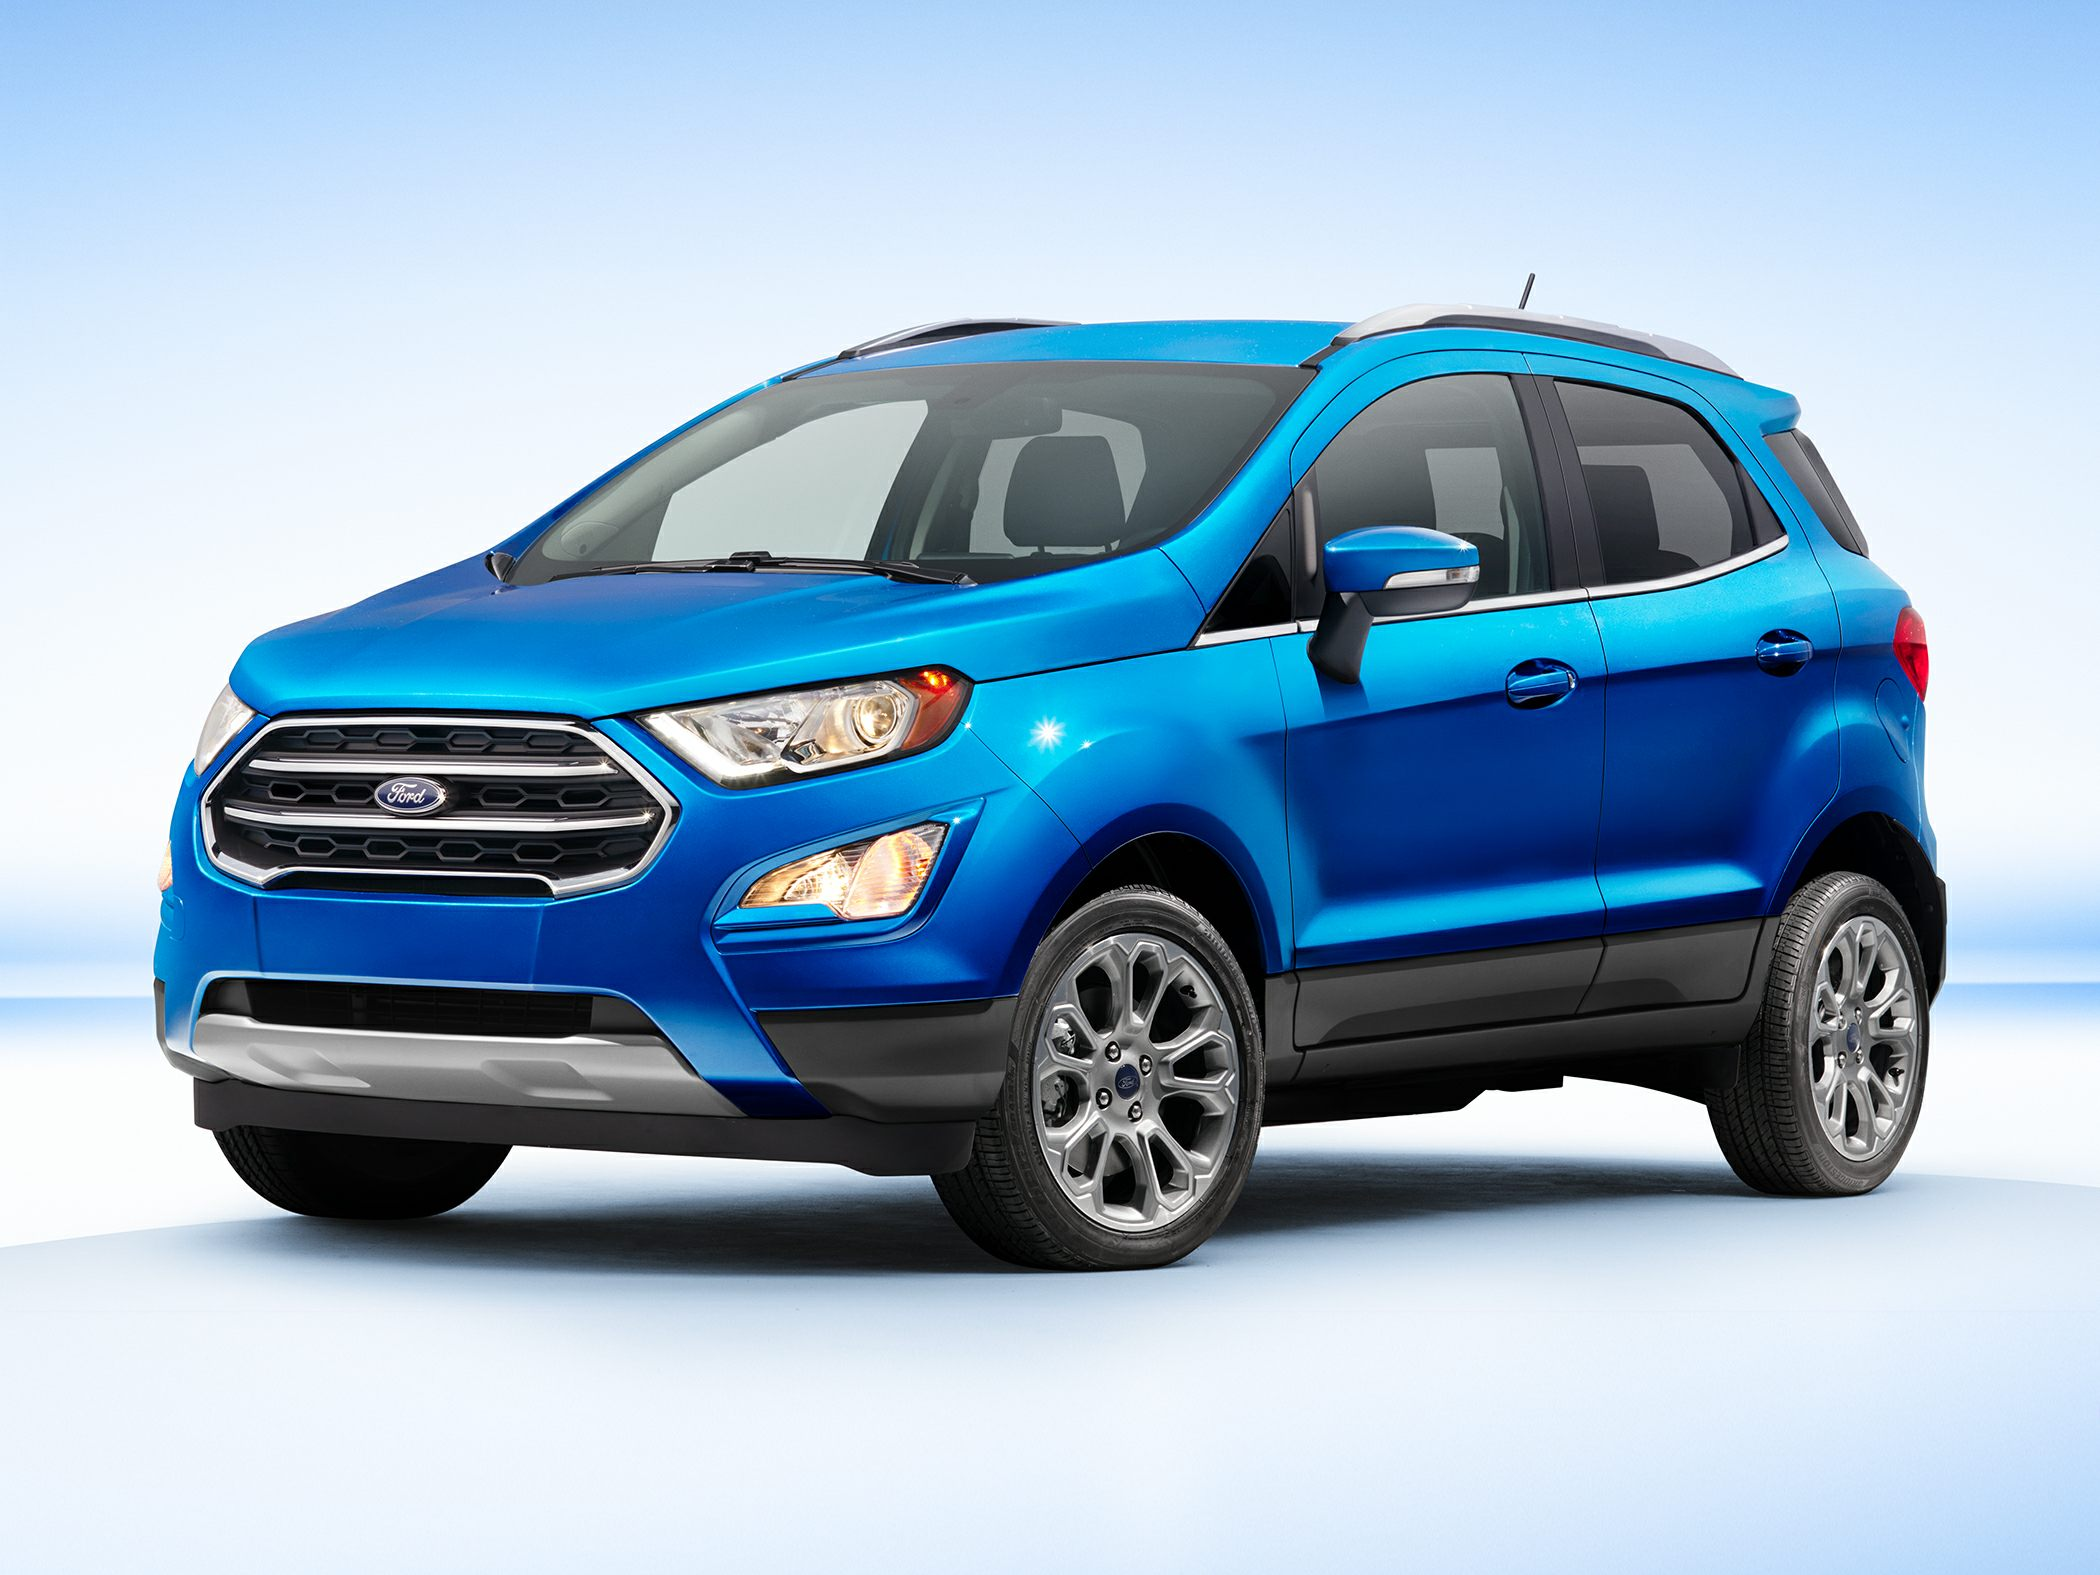 2019 Ford Ecosport Deals Prices Incentives Leases Overview